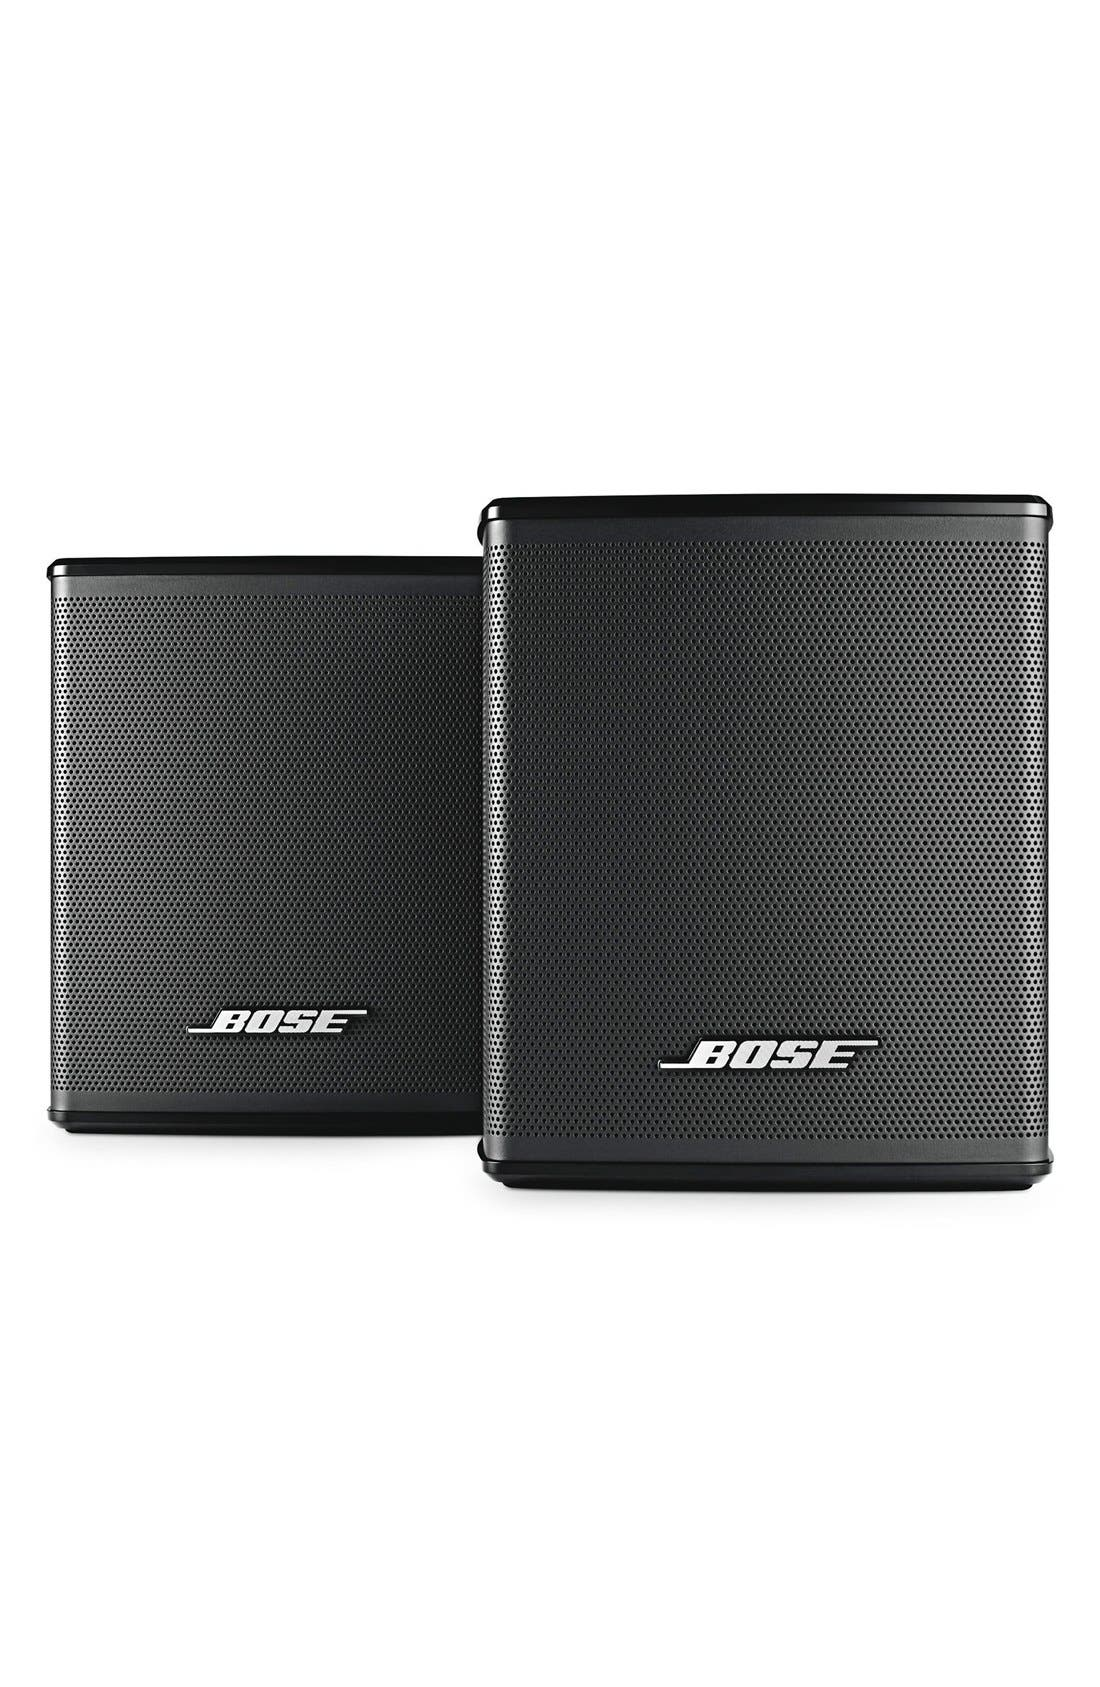 Main Image - Bose® Virtually Invisible® 300 Wireless Surround Speakers